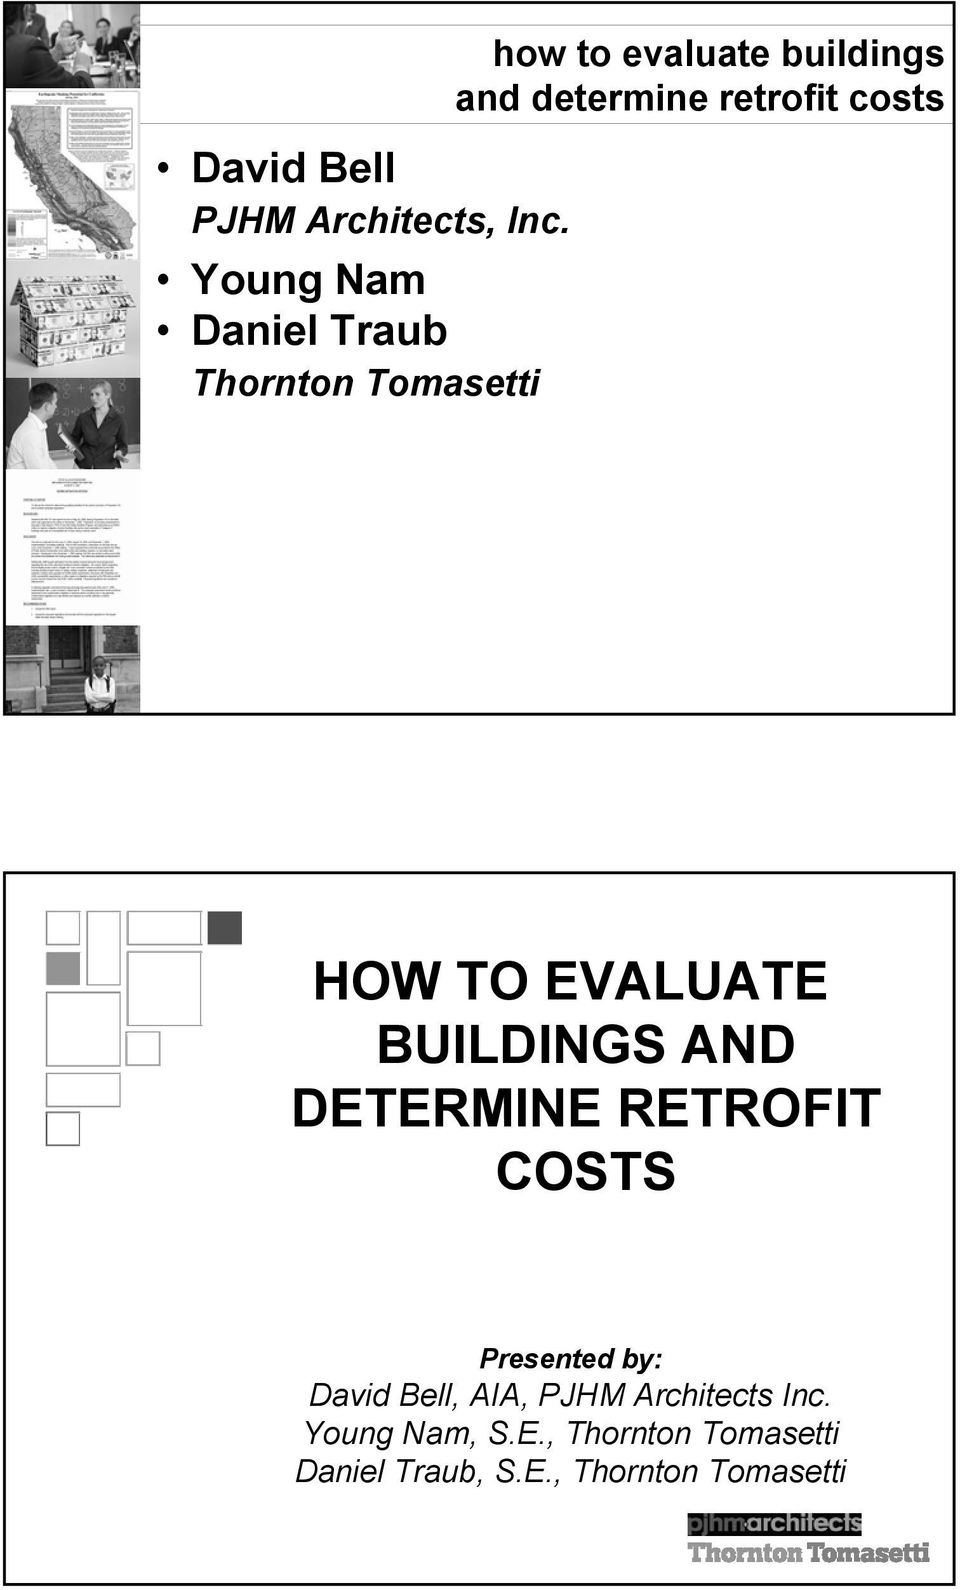 determine retrofit costs HOW TO EVALUATE BUILDINGS AND DETERMINE RETROFIT